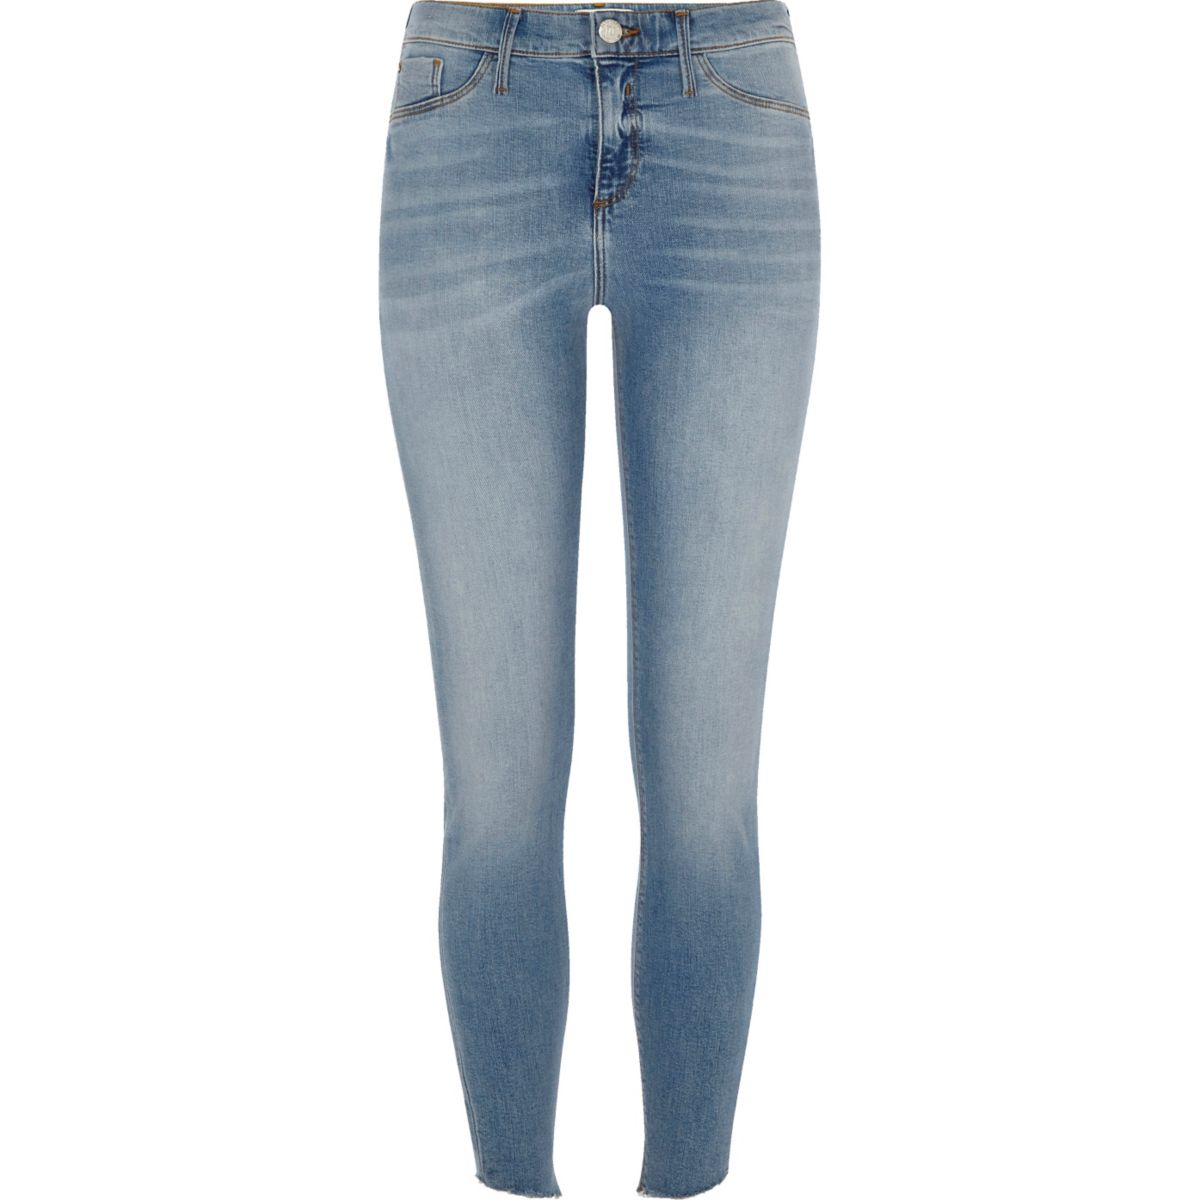 Blue wash Molly skinny jeggings